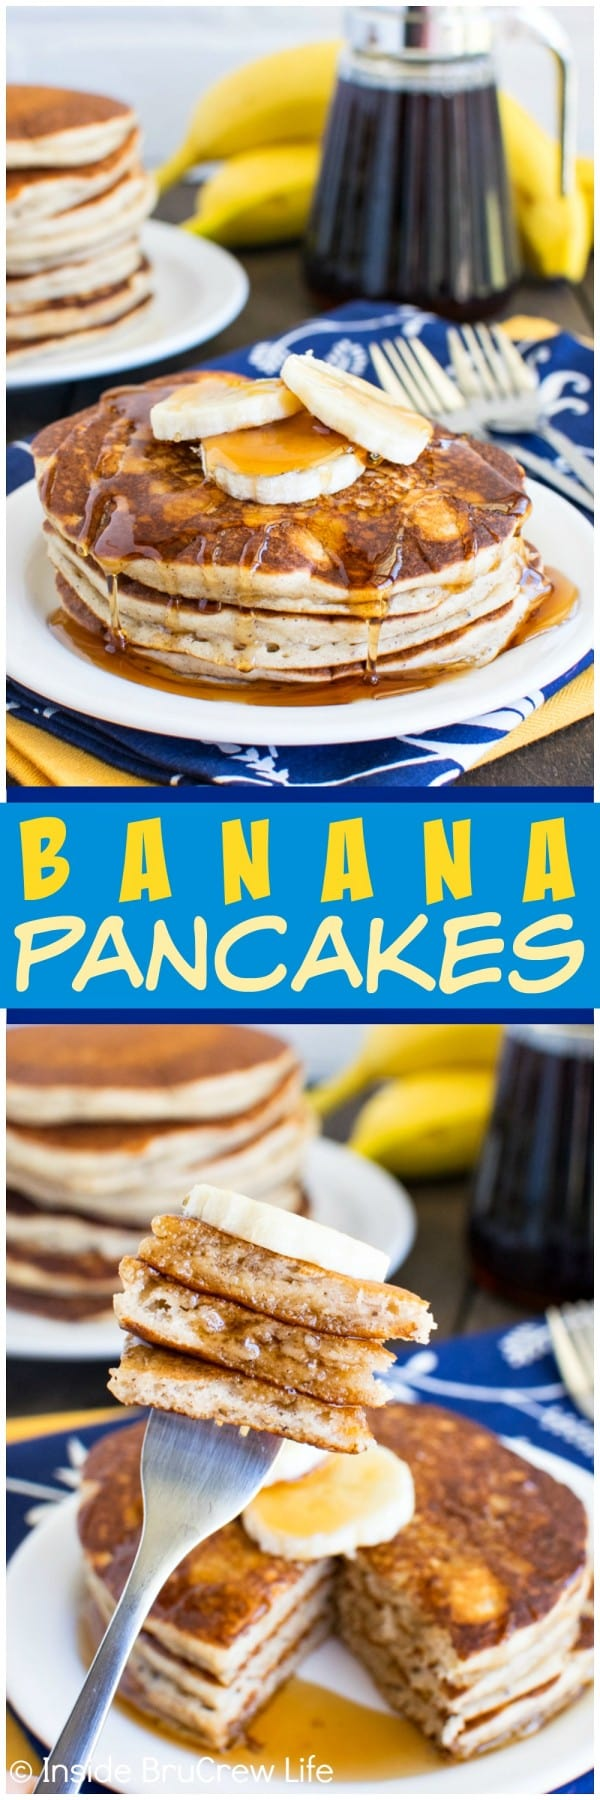 Banana Pancakes - the batter for these pancakes comes together quickly in the blender. Great breakfast recipe to make and freeze for later!